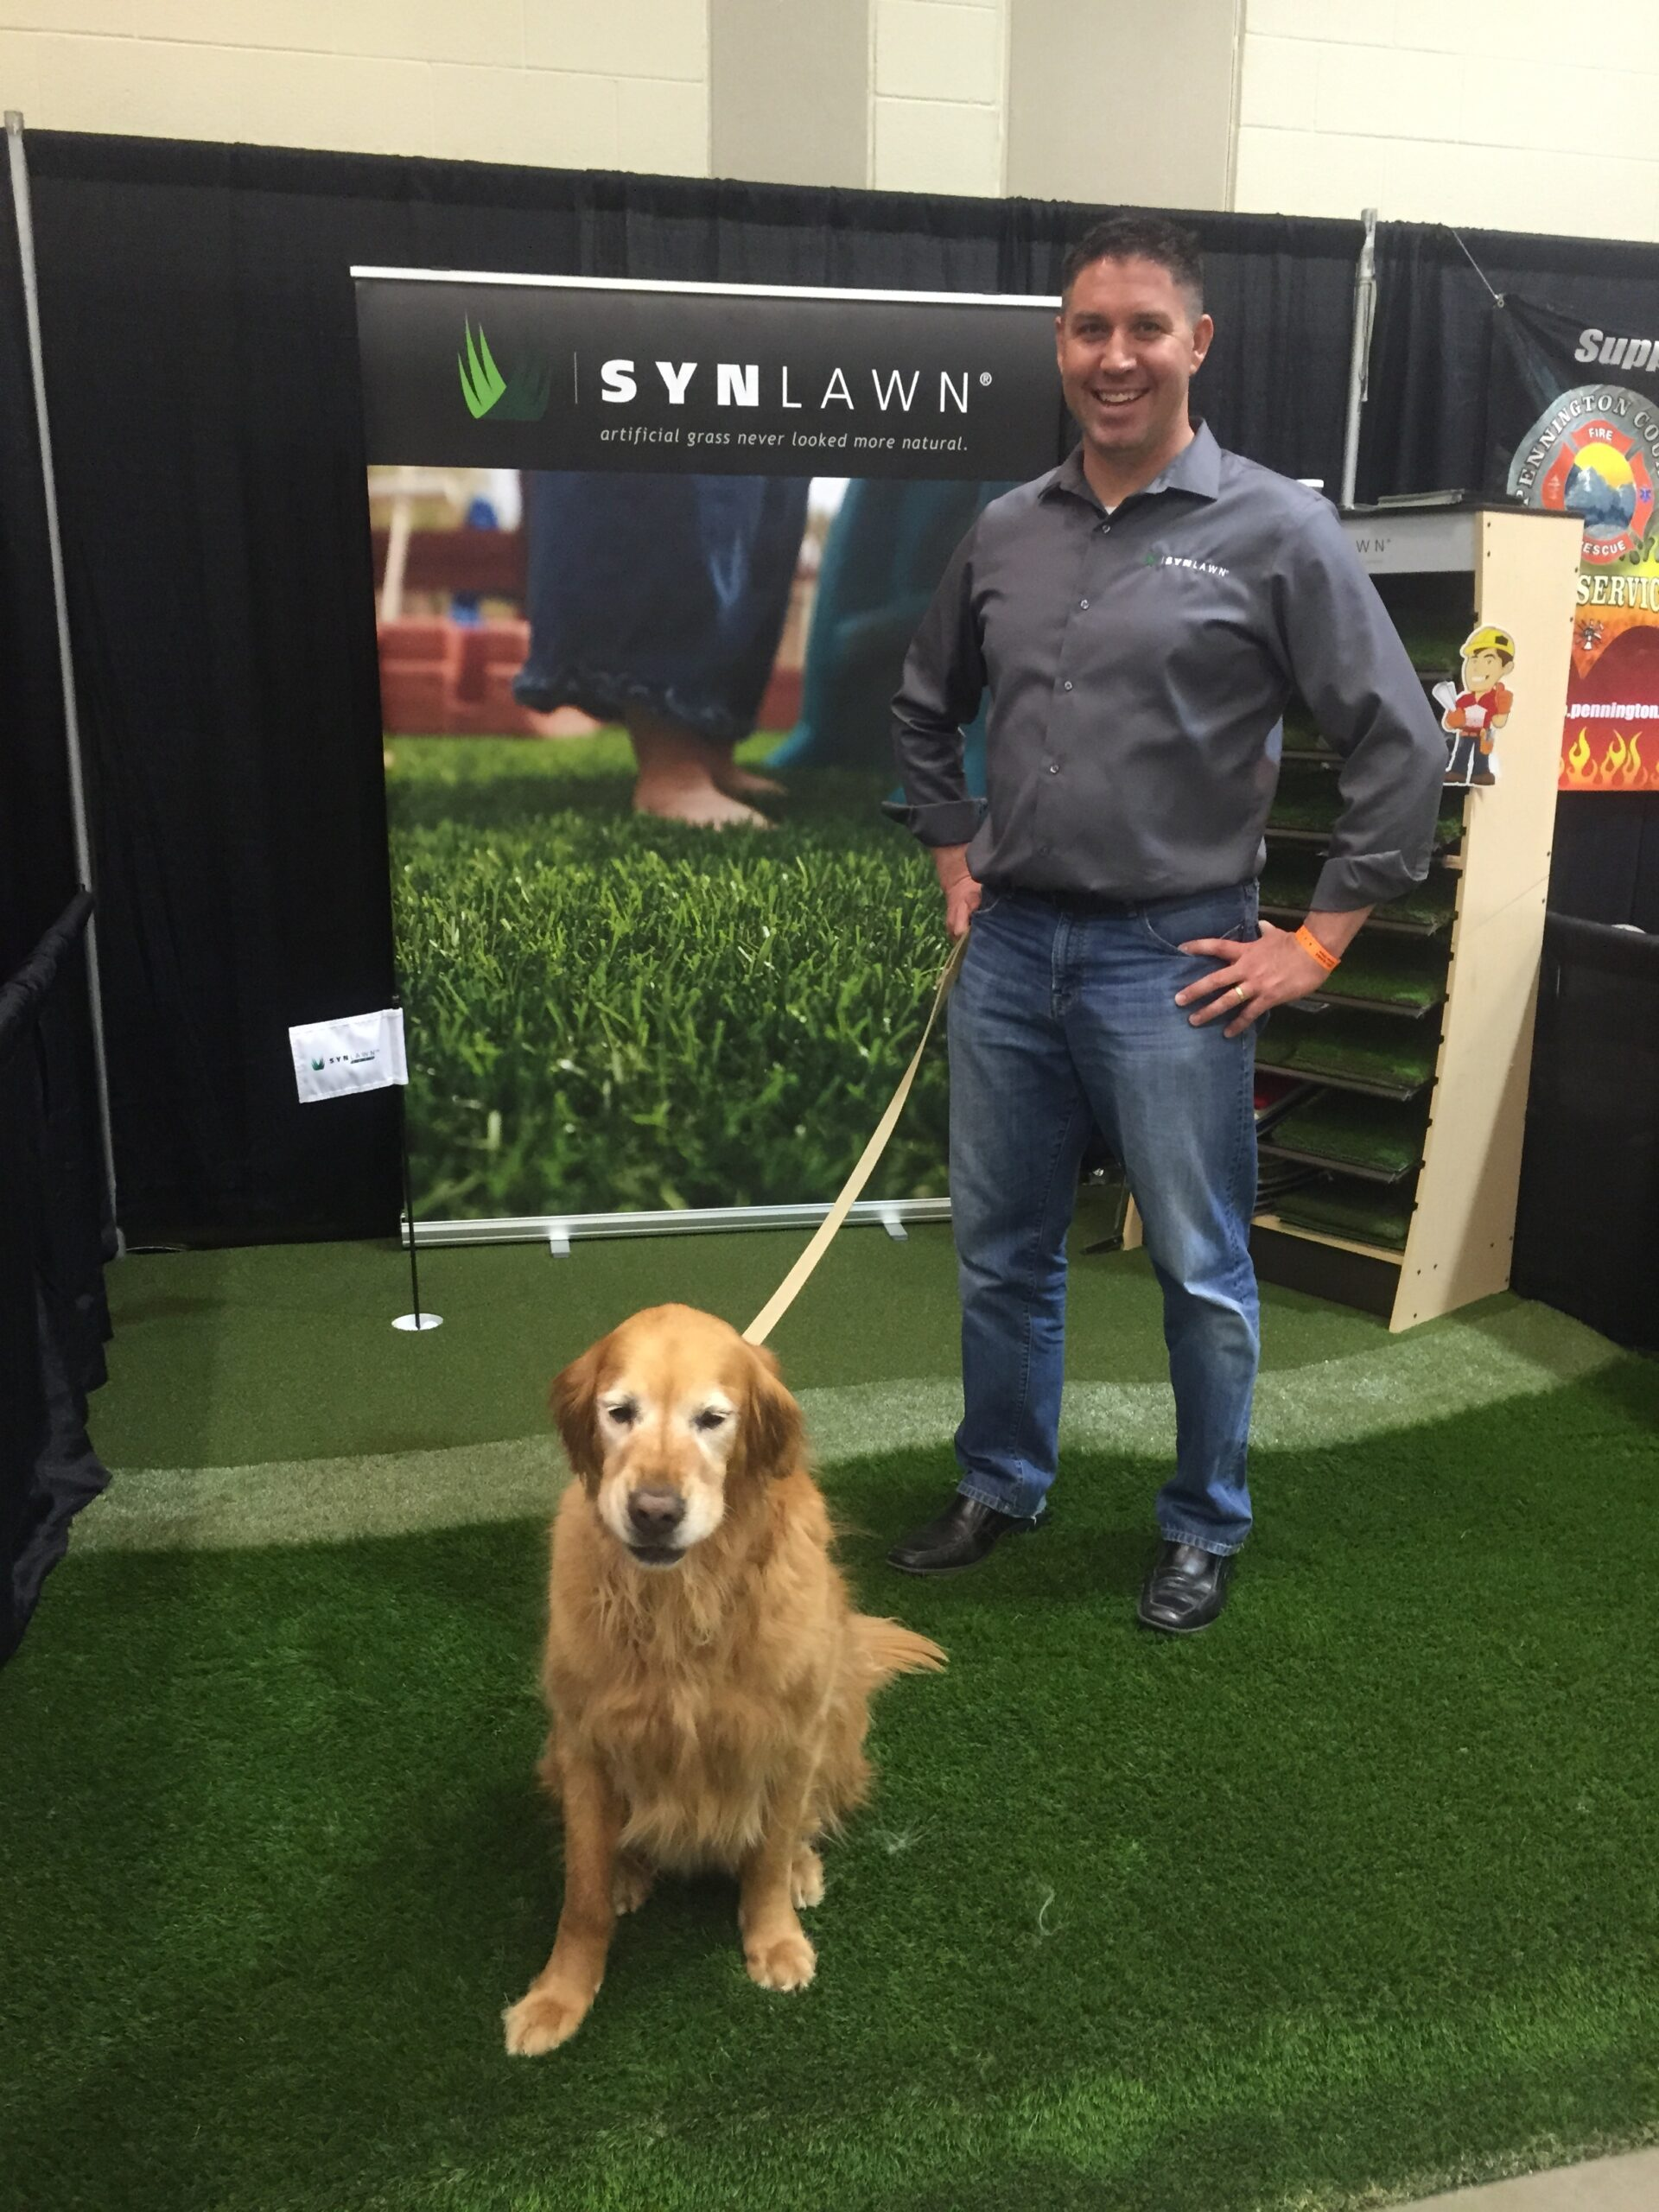 synlawn artificial grass event